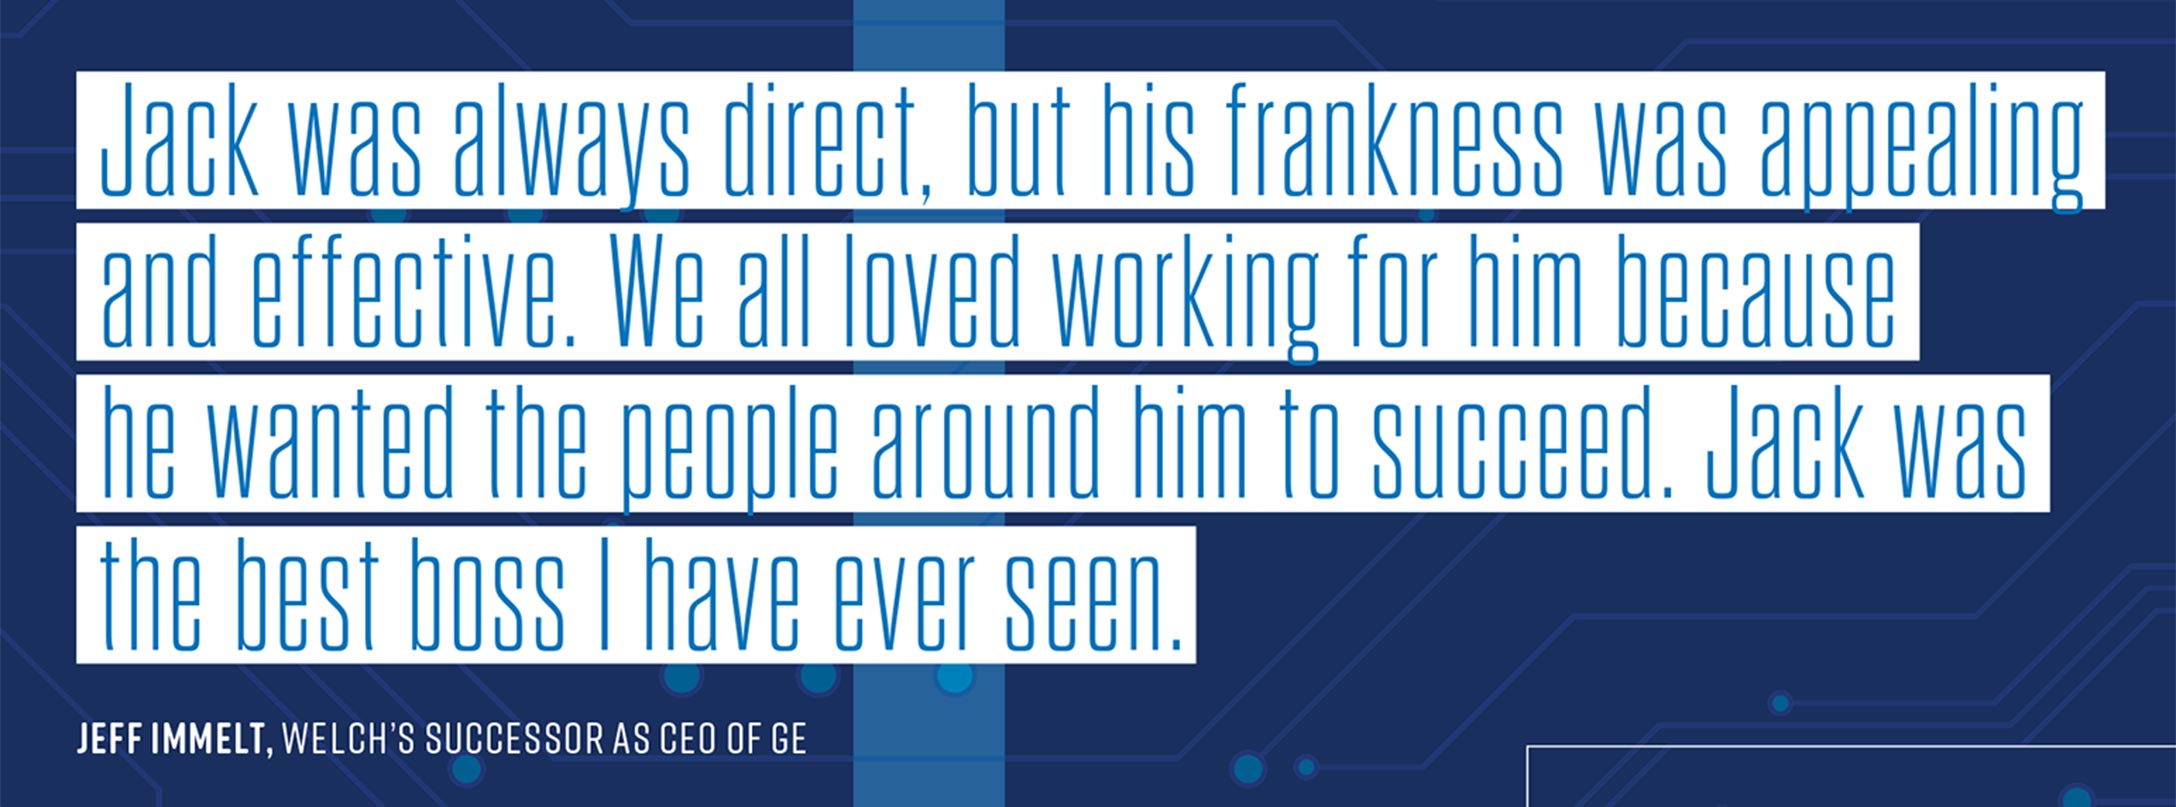 Jack was always direct, but his frankness was appealing and effective. We all loved working for him because he wanted the people around him to succeed. Jack was the best boss I have ever seen. – Jeff Immelt, Welch's successor as CEO of GE